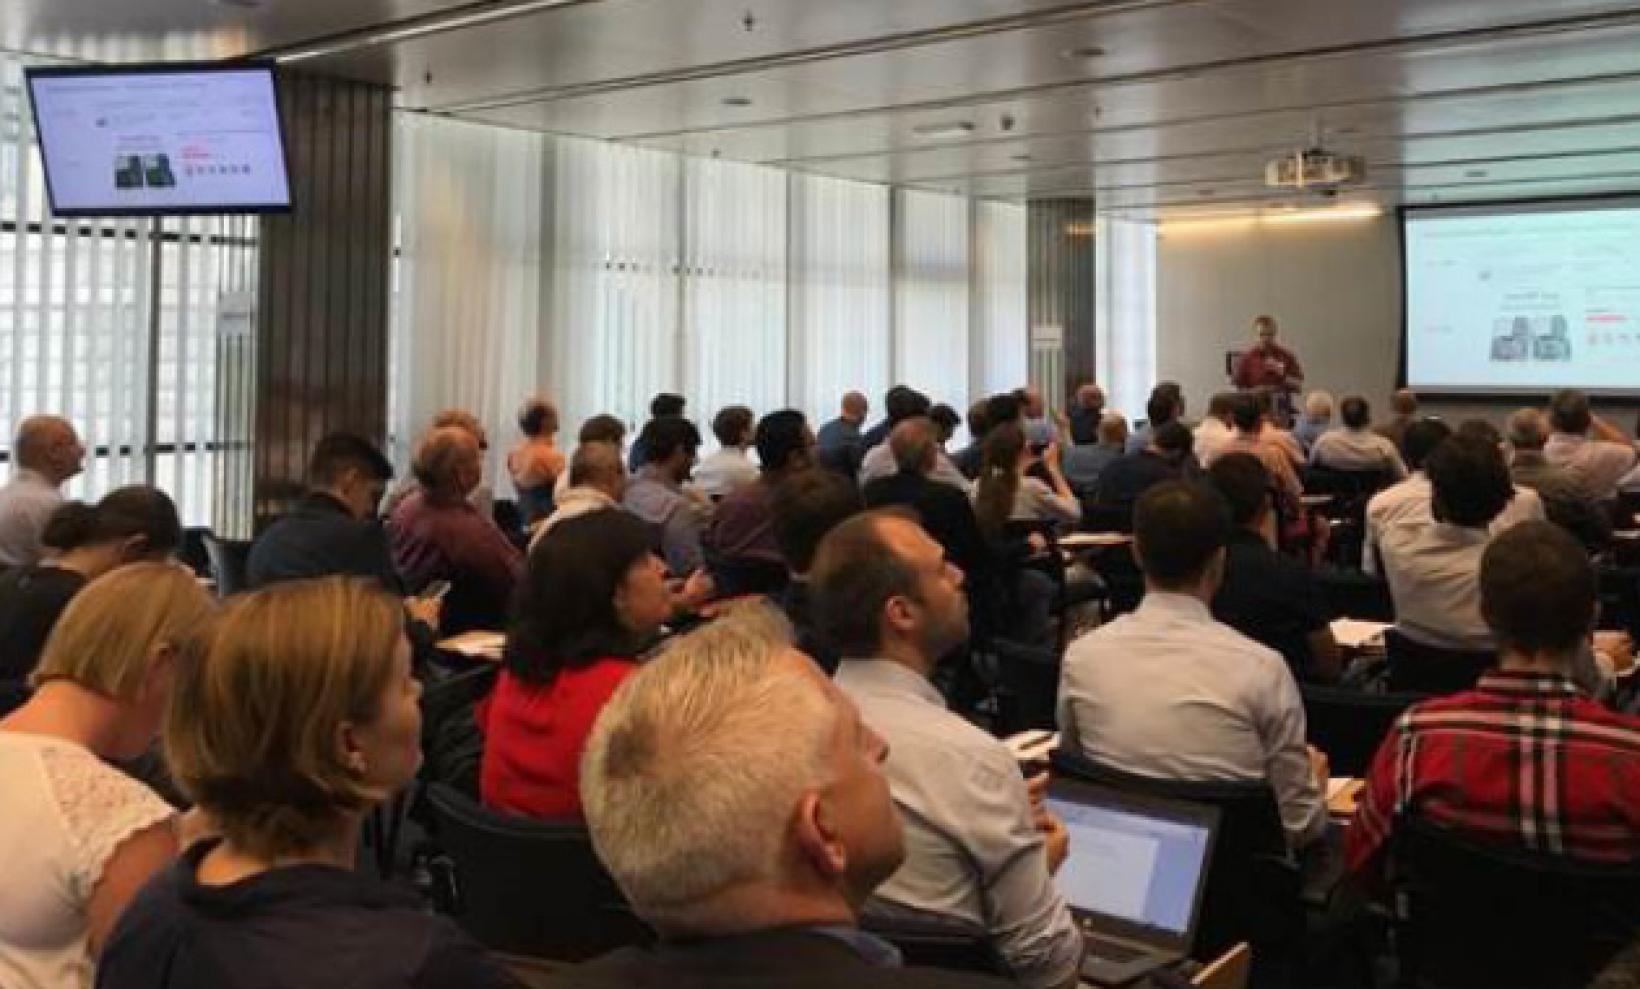 The workshop brought around 100 experts together to share their experience and progress around the use of raw measurements.